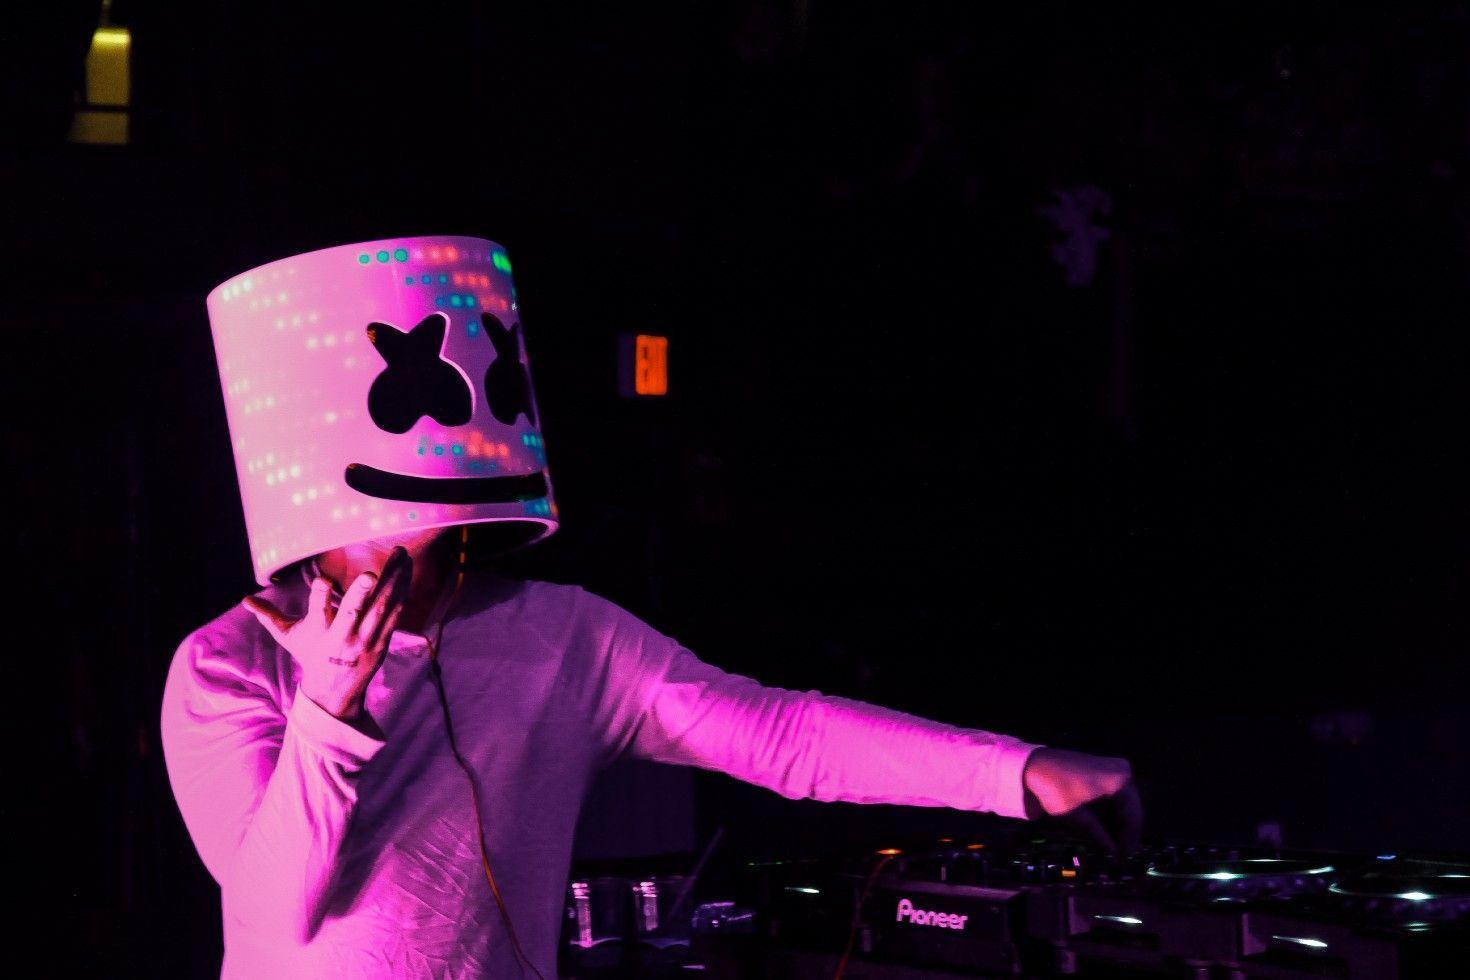 Free Download Marshmello Wallpapers 1470x980 For Your